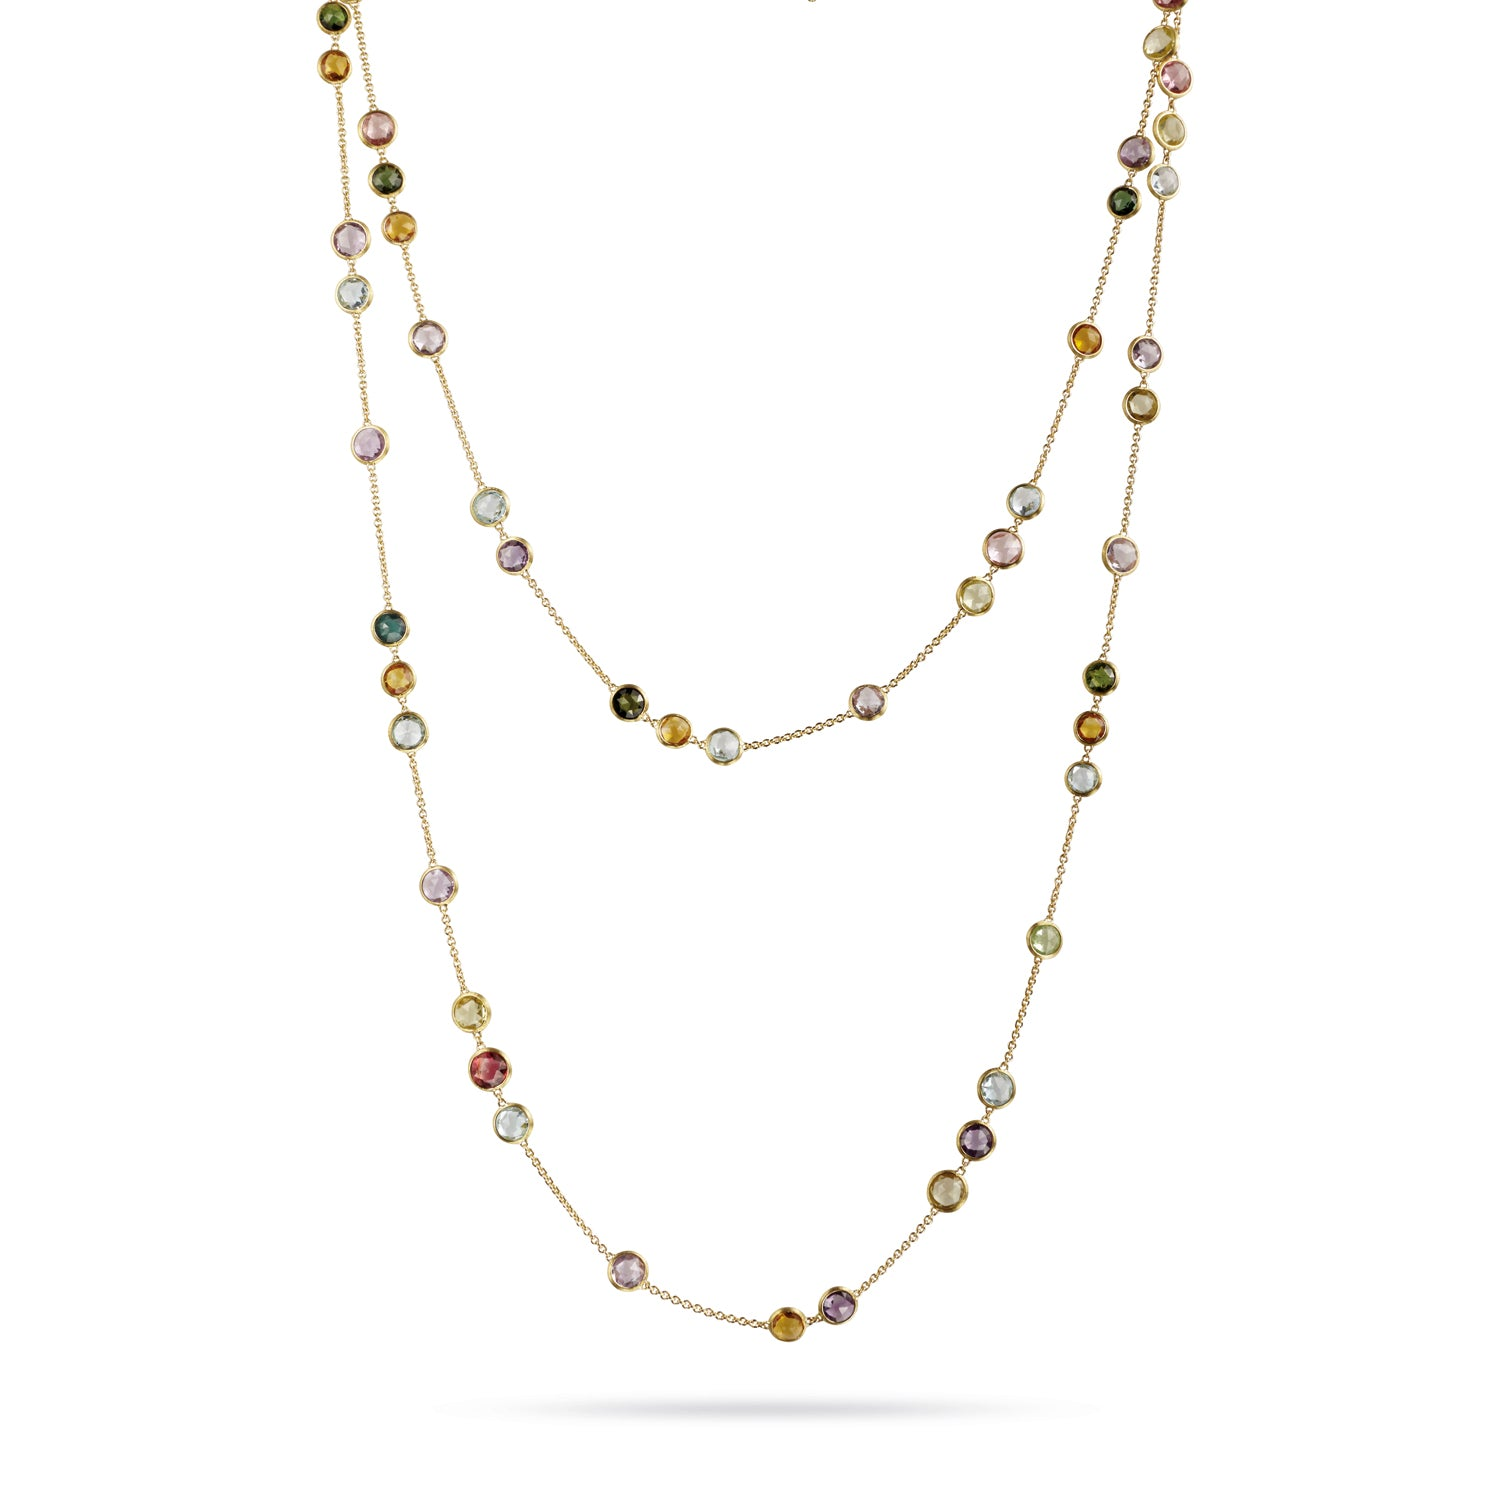 Jaipur Colour Necklace in 18k Yellow Gold with Mixed Gemstones Long - Orsini Jewellers NZ